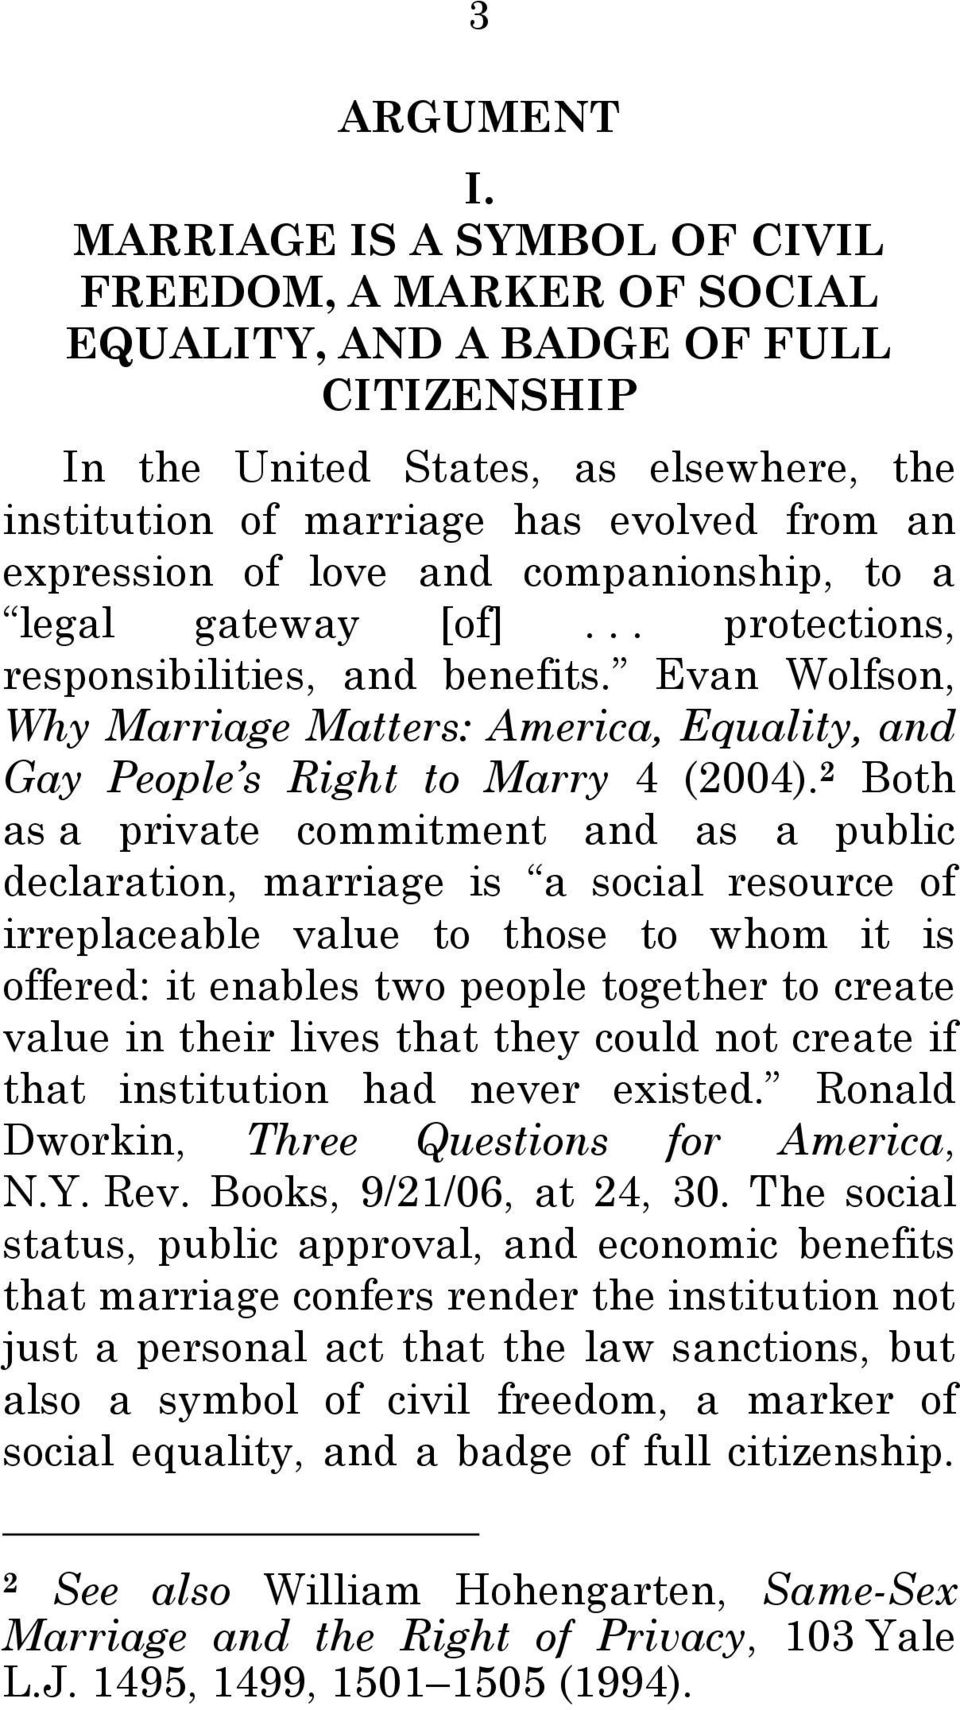 love and companionship, to a legal gateway [of]... protections, responsibilities, and benefits. Evan Wolfson, Why Marriage Matters: America, Equality, and Gay People s Right to Marry 4 (2004).